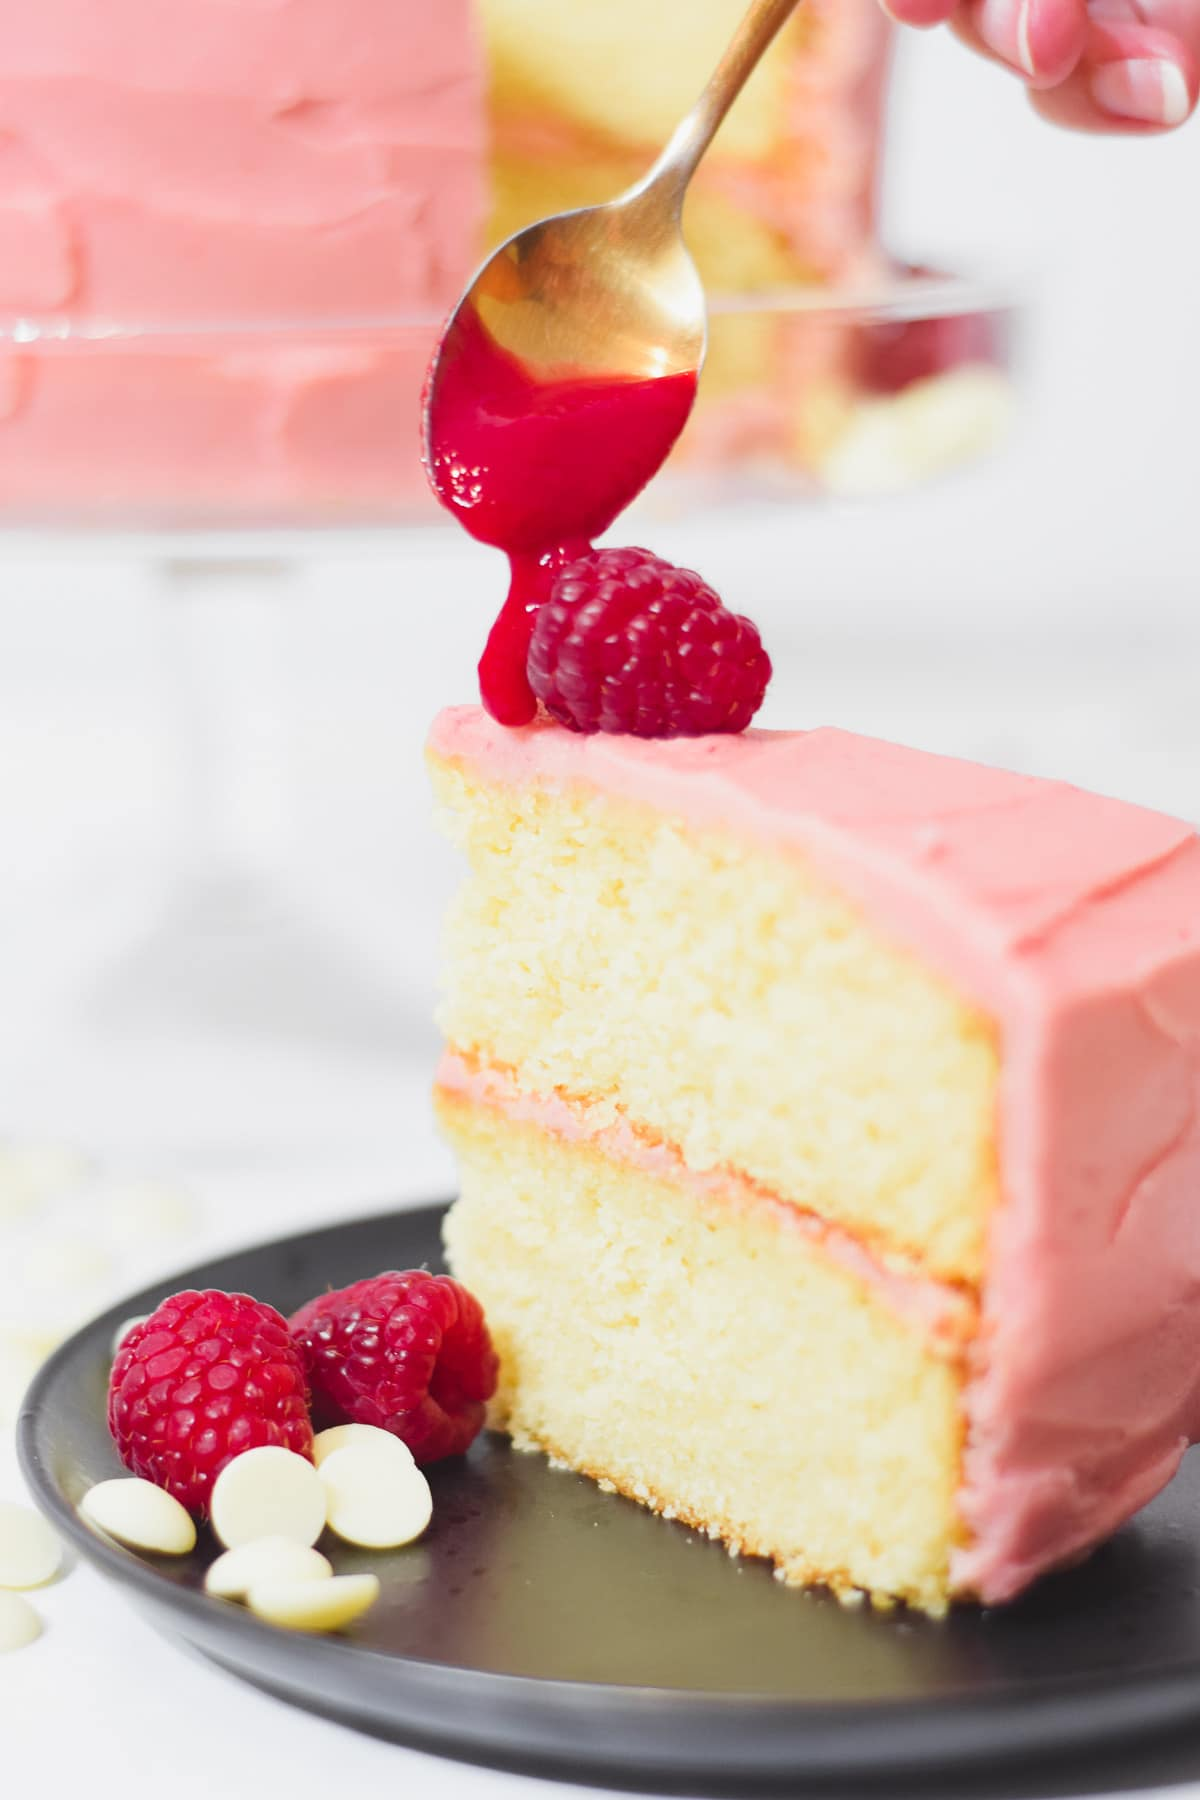 Slice of raspberry white chocolate cake with a pureed raspberry reduction being drizzled on top